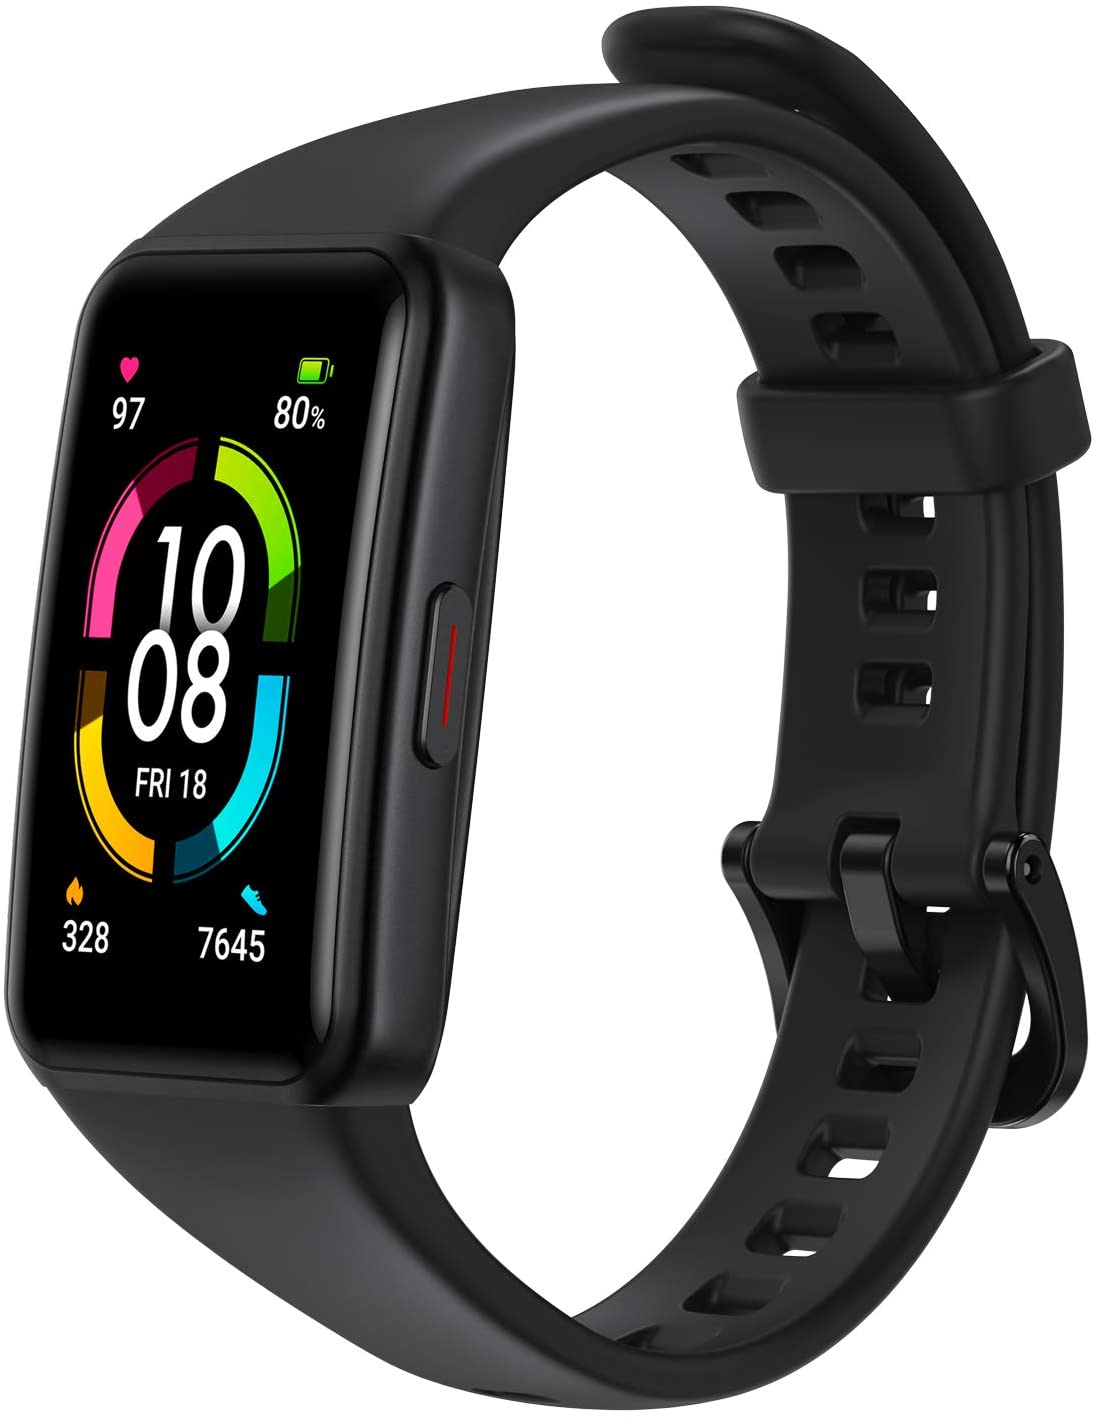 HONOR Band 6 Smart Watch Review